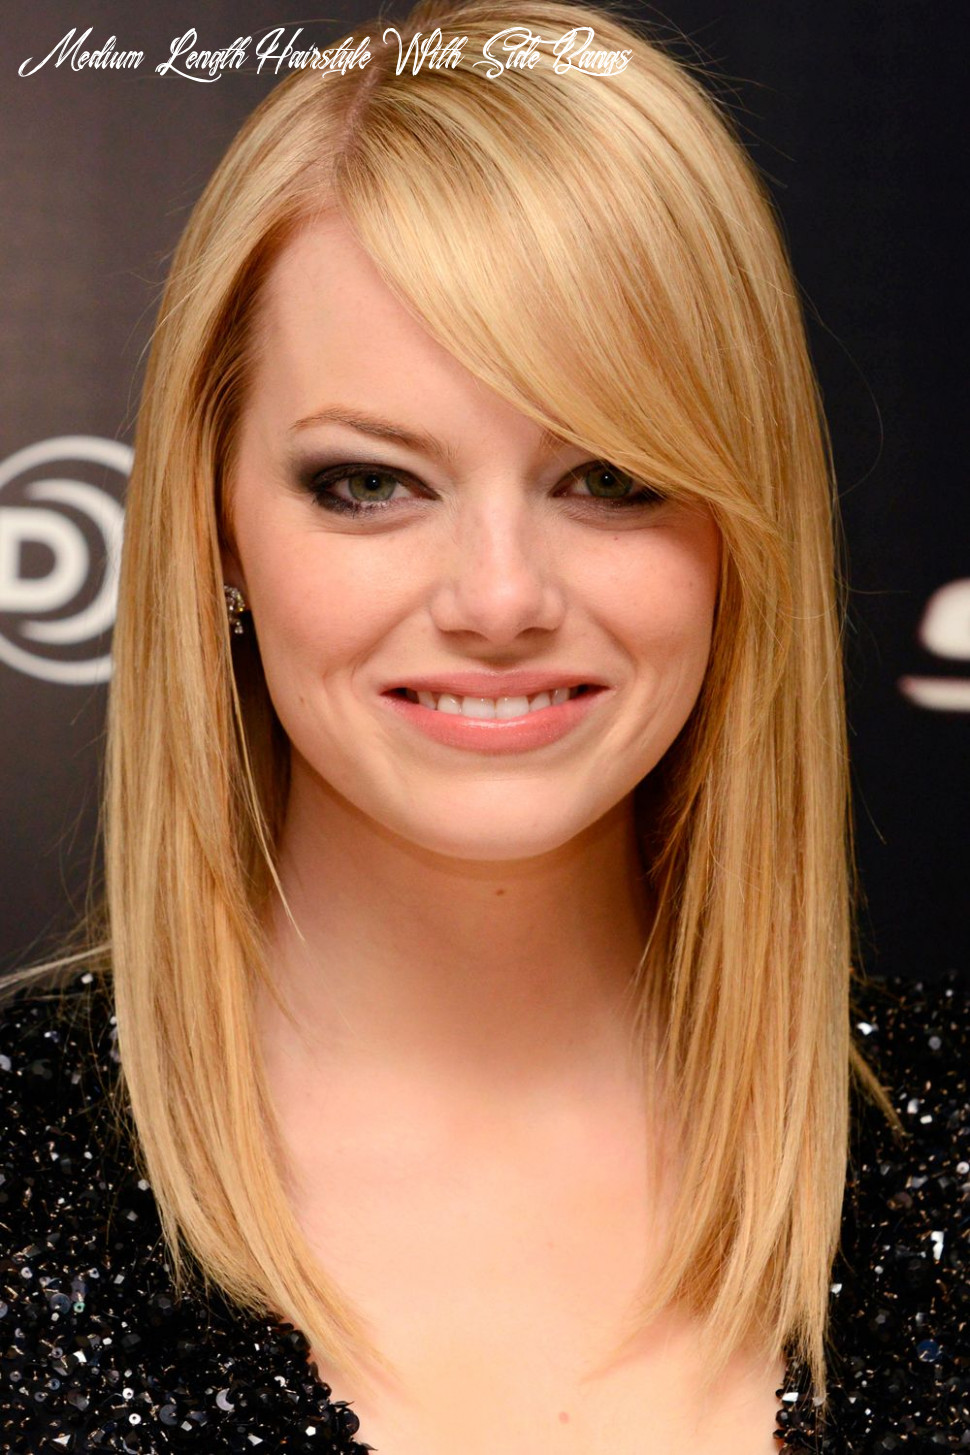 Cute medium length hairstyles with side bangs for thin blonde and